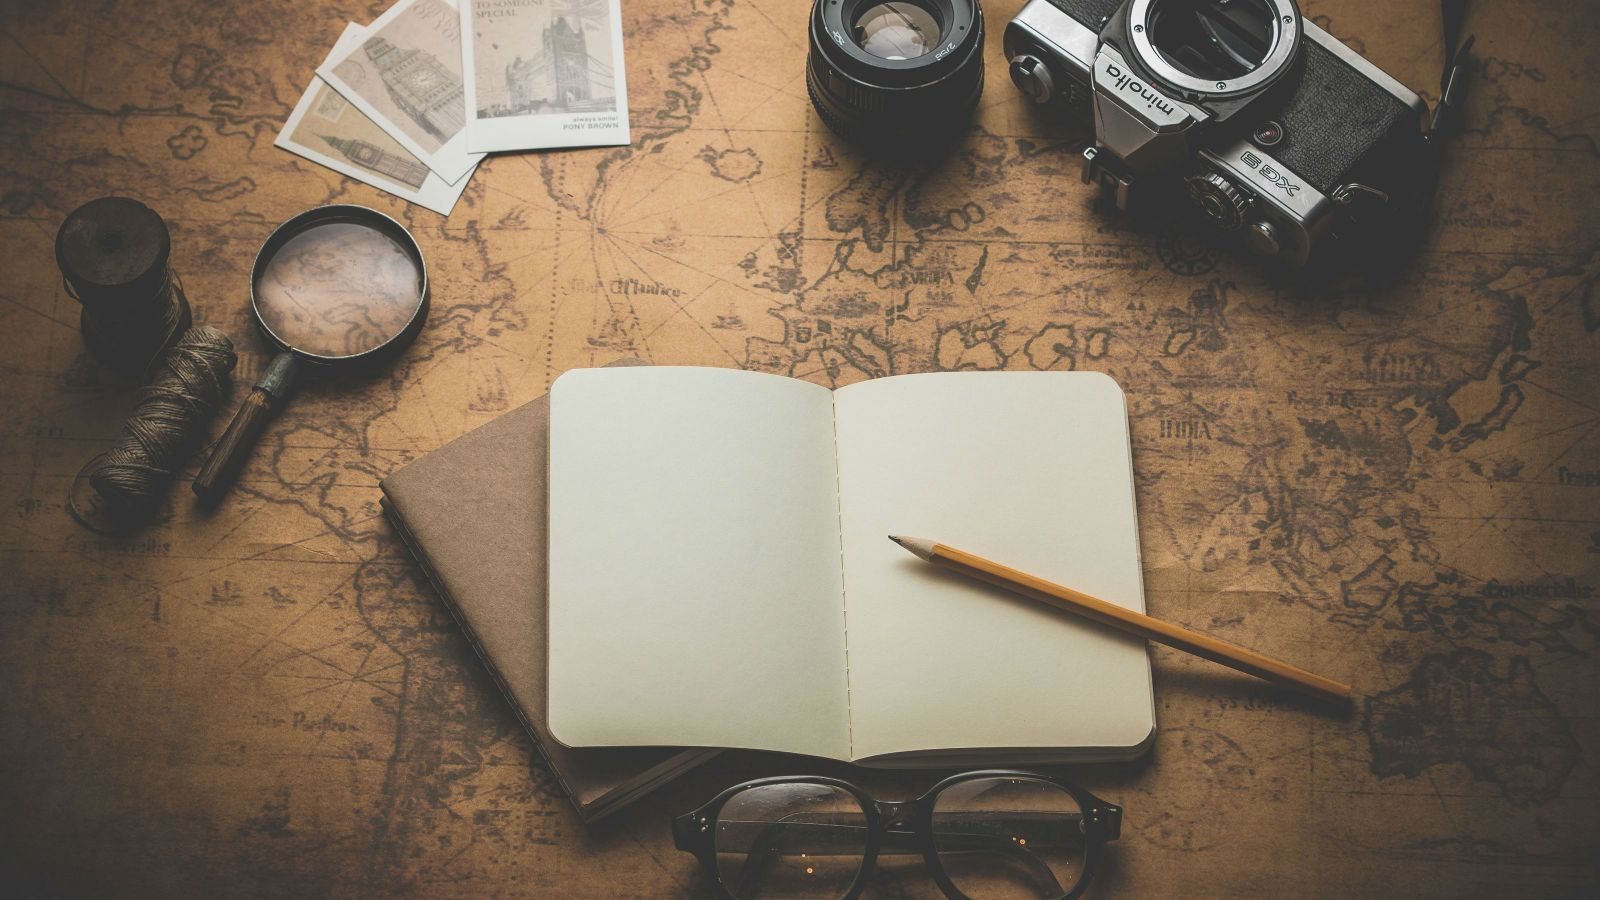 A notebook, pencil, magnifying glass, spectacles, camera and polaroids on a background of an old school world map.